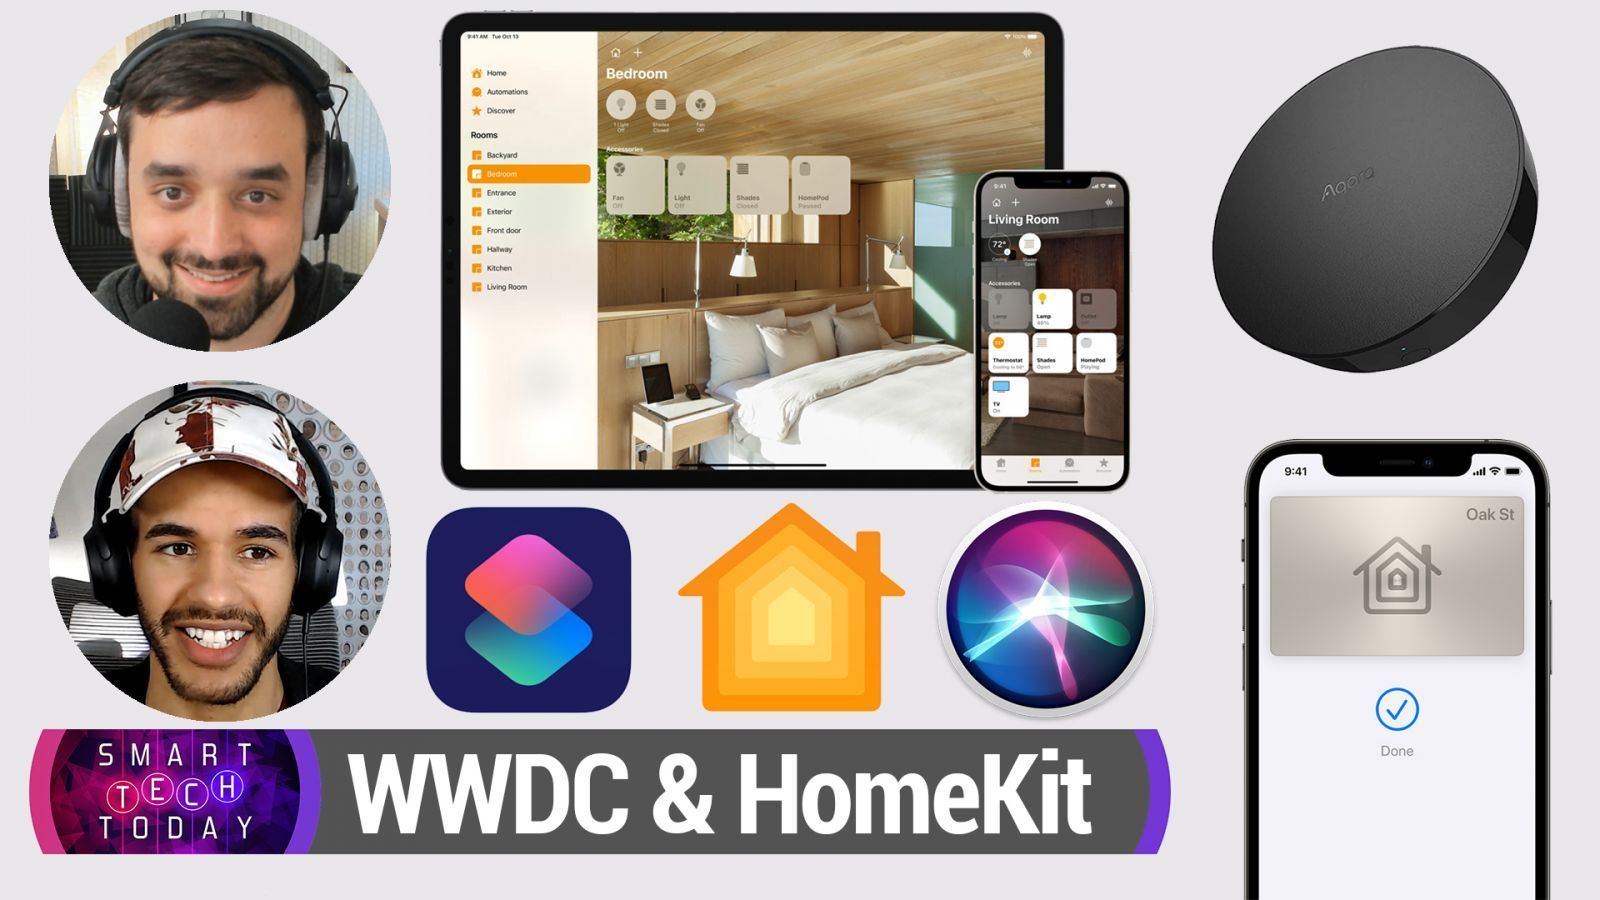 The WWDC Smart Home